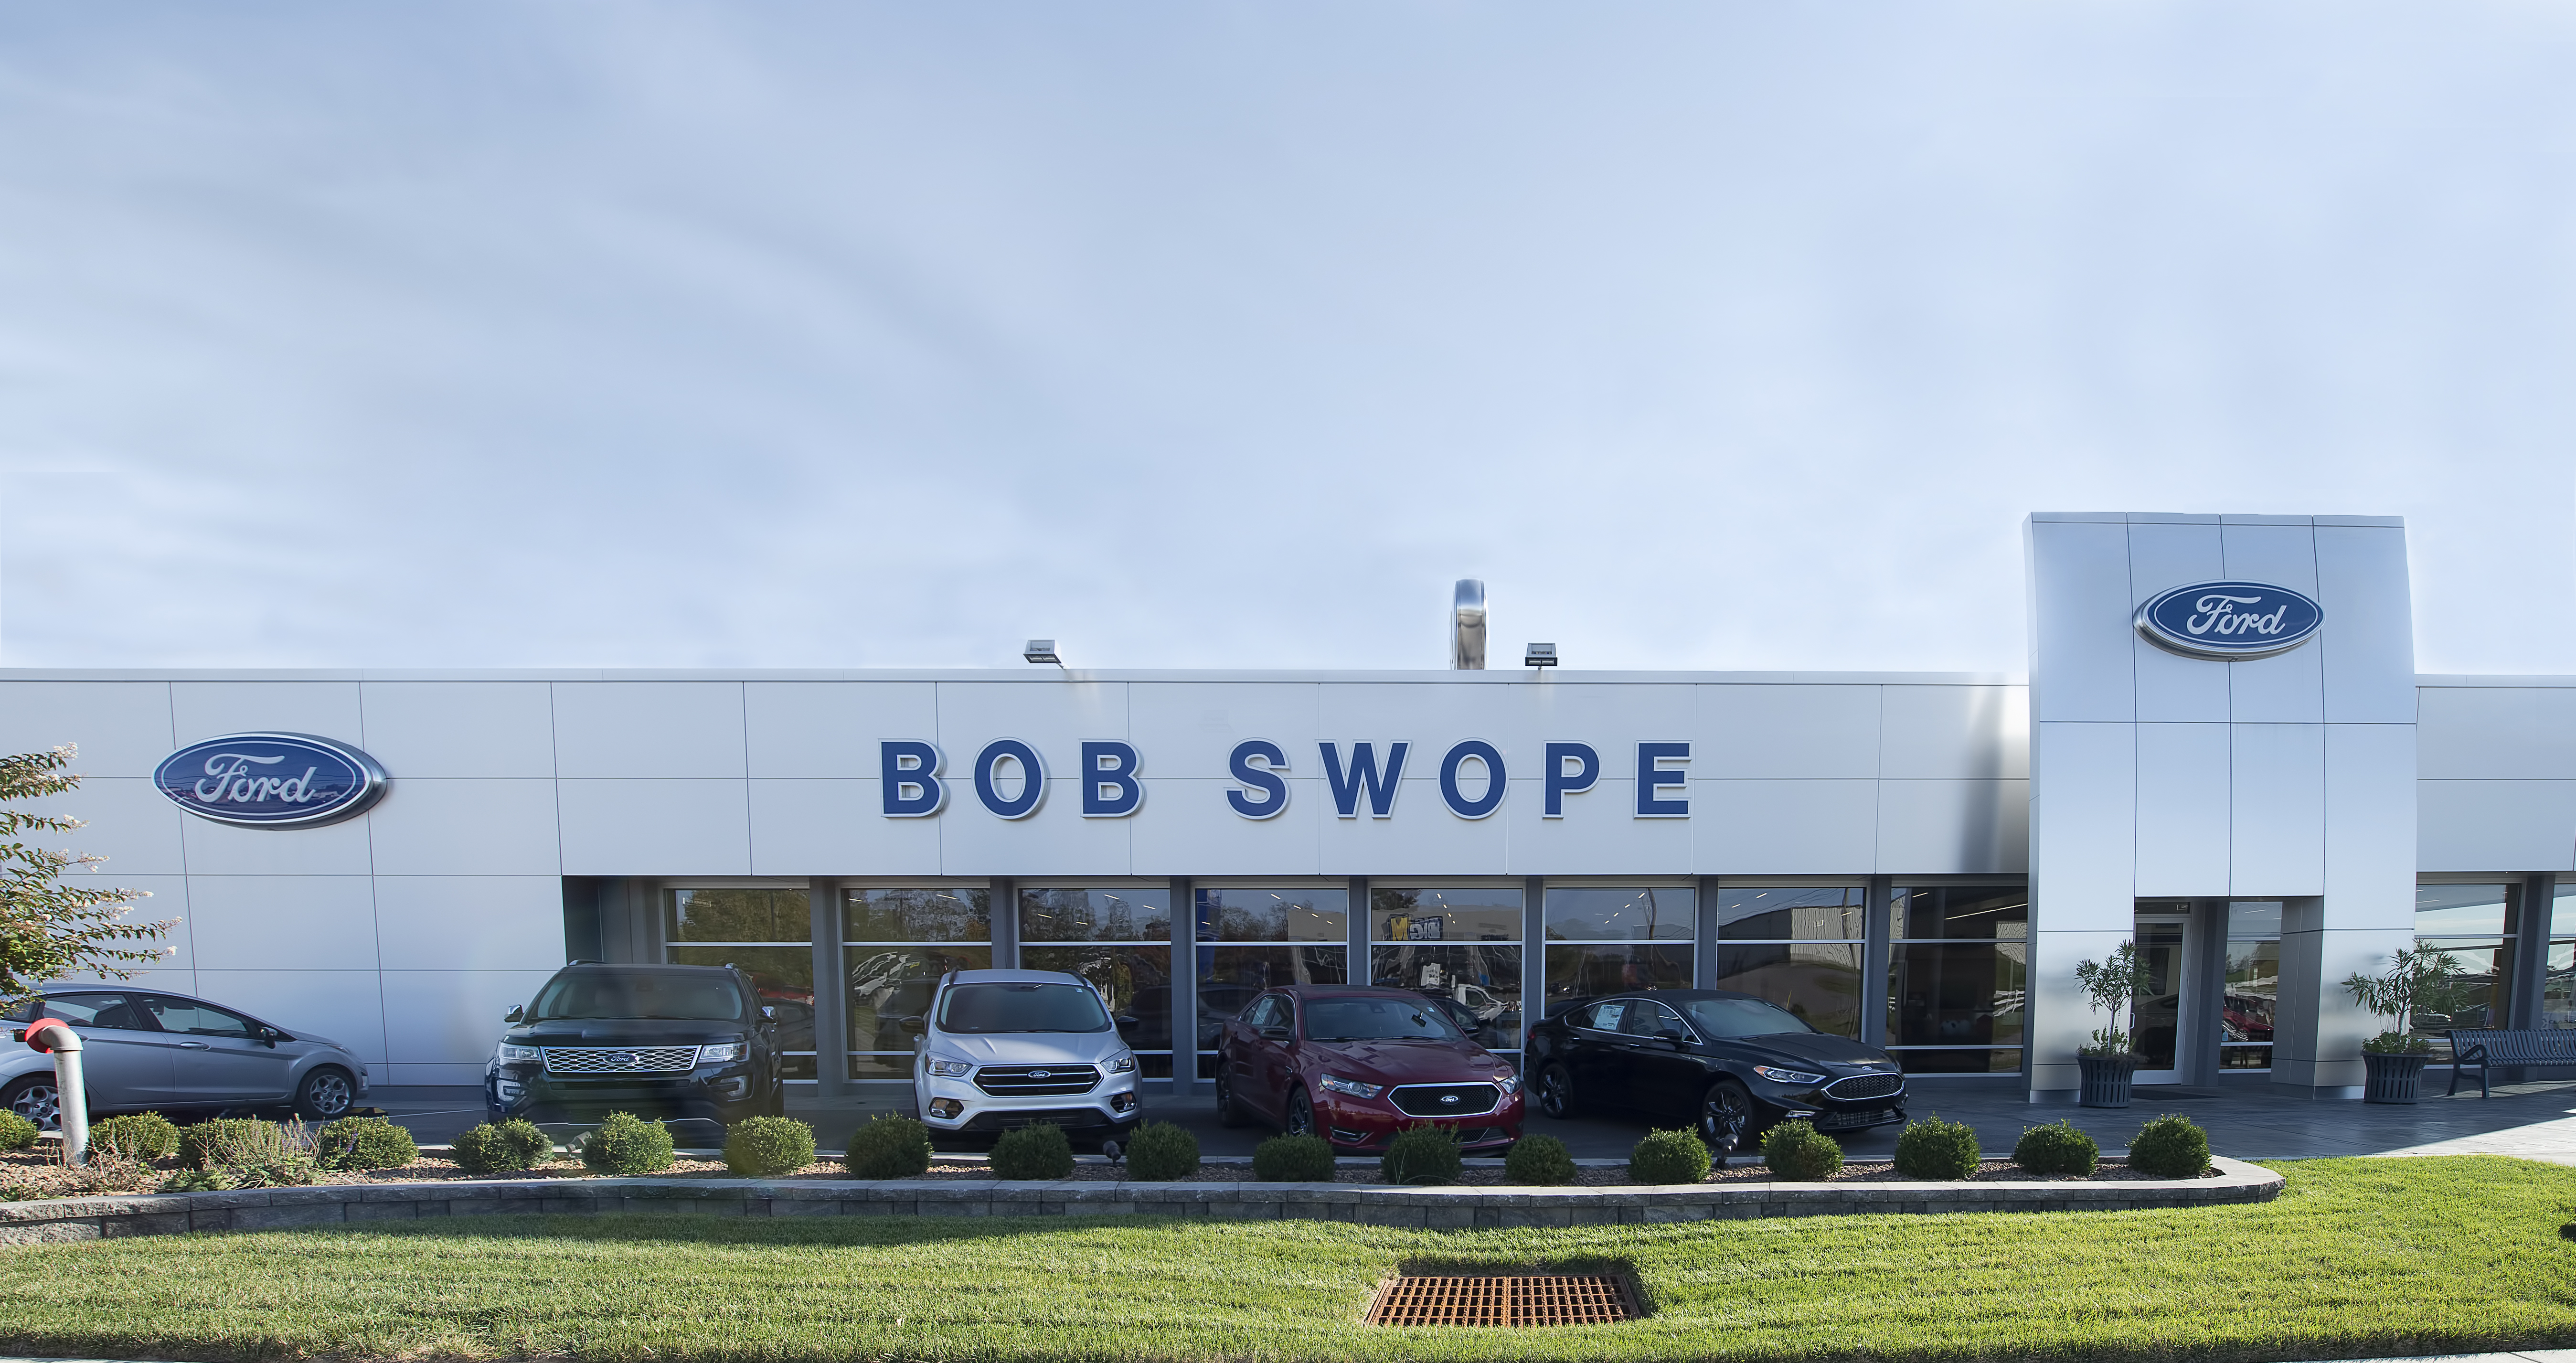 Bob swope ford elizabethtown ky new ford used car html for Swope motors elizabethtown ky